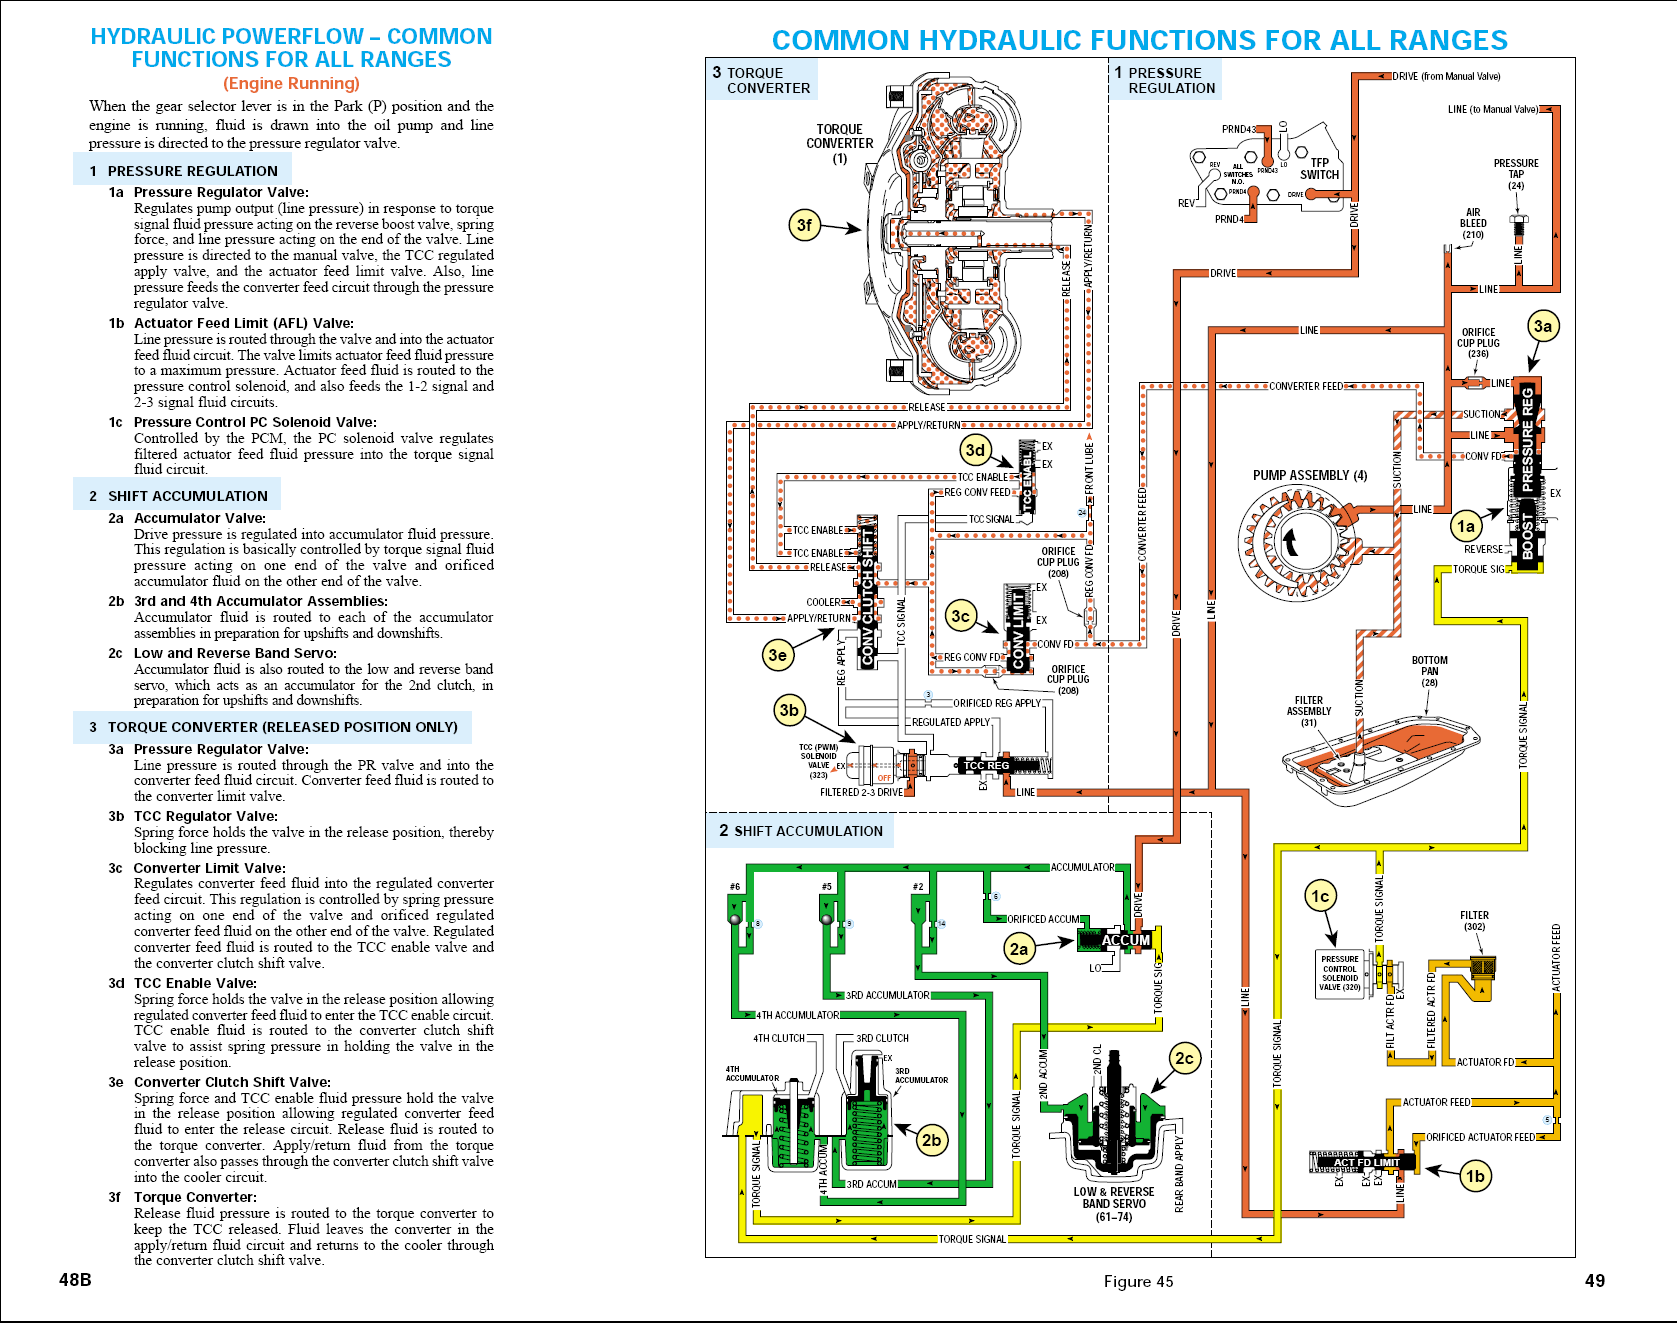 wiring diagram 700r4 transmission the wiring diagram 700r4 transmission wiring diagram vidim wiring diagram wiring diagram